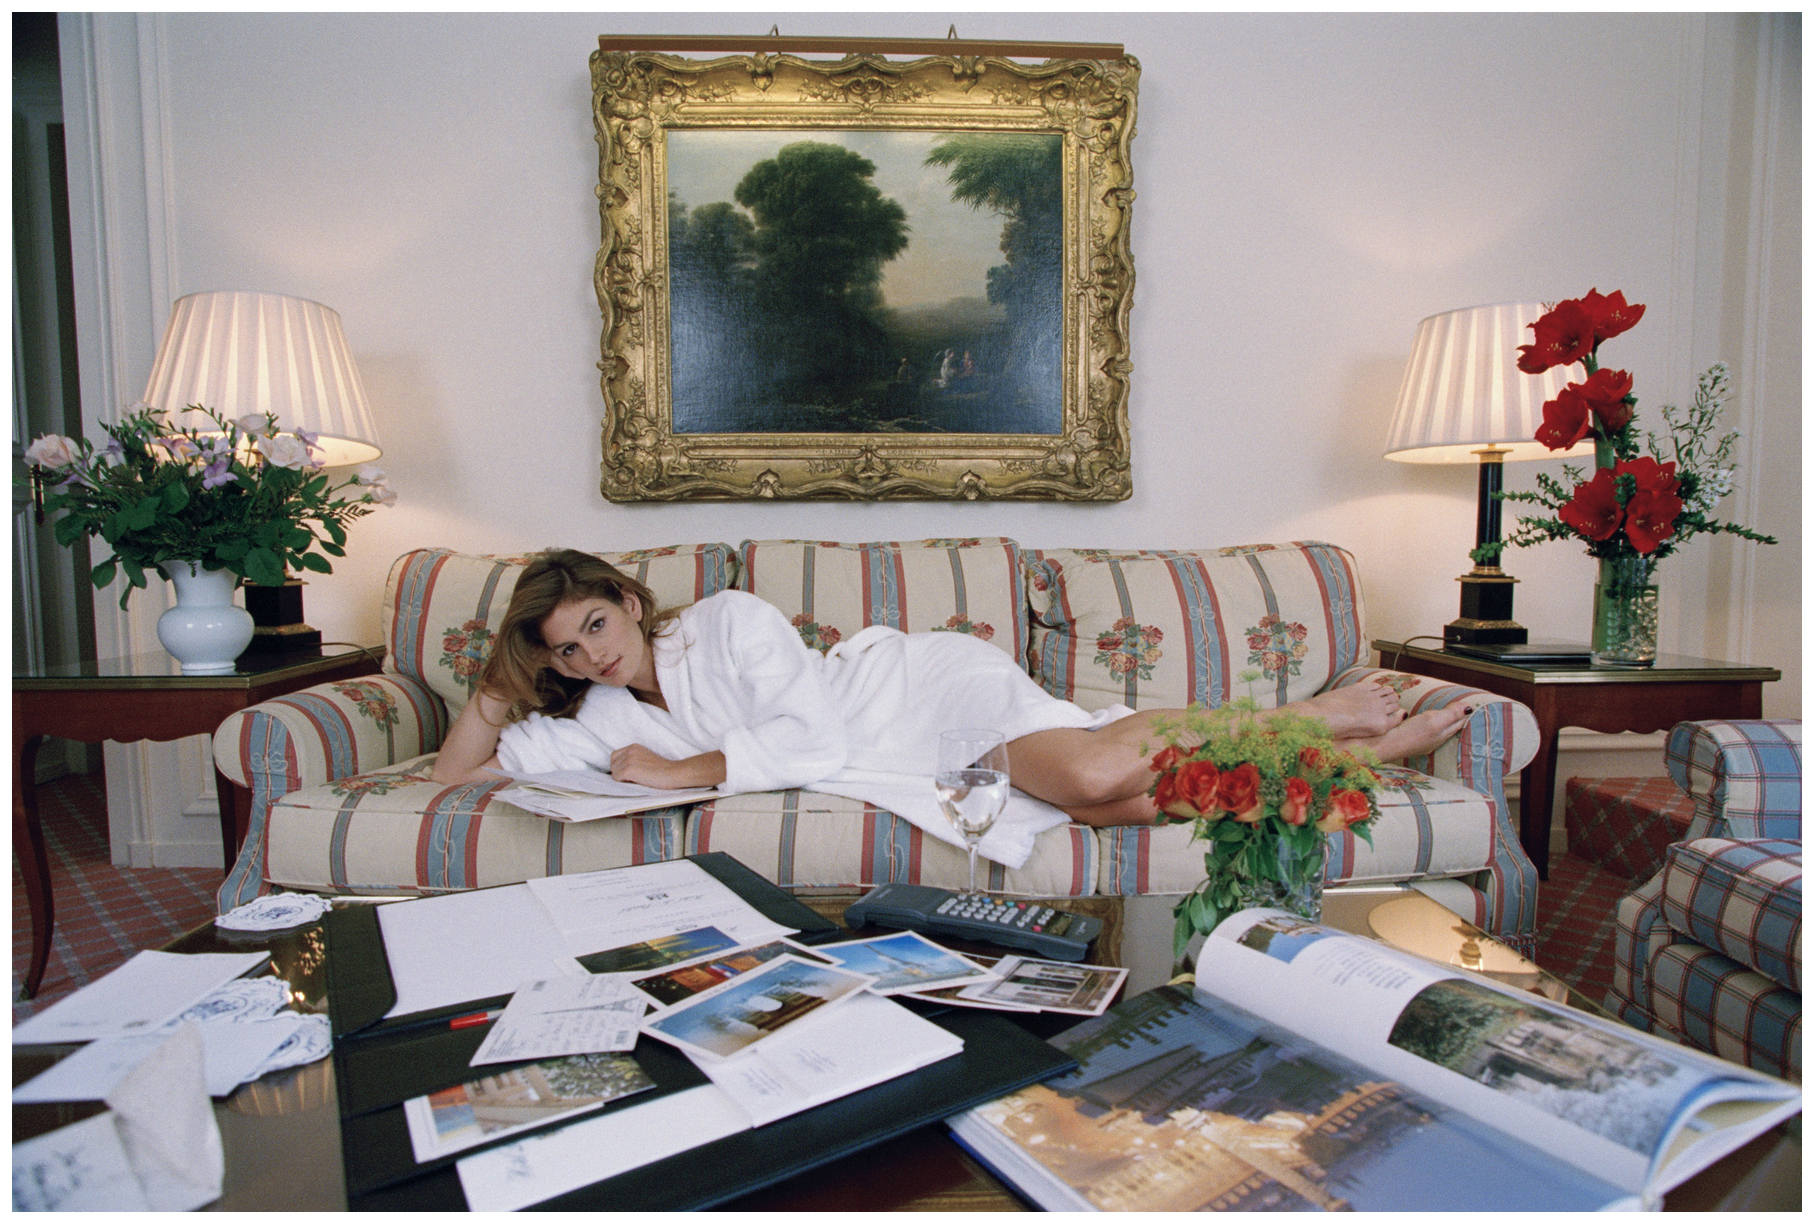 October 1995, Paris, France --- Day in the Life of Cindy Crawford --- Image by © Christian Simonpietri/Sygma/Corbis